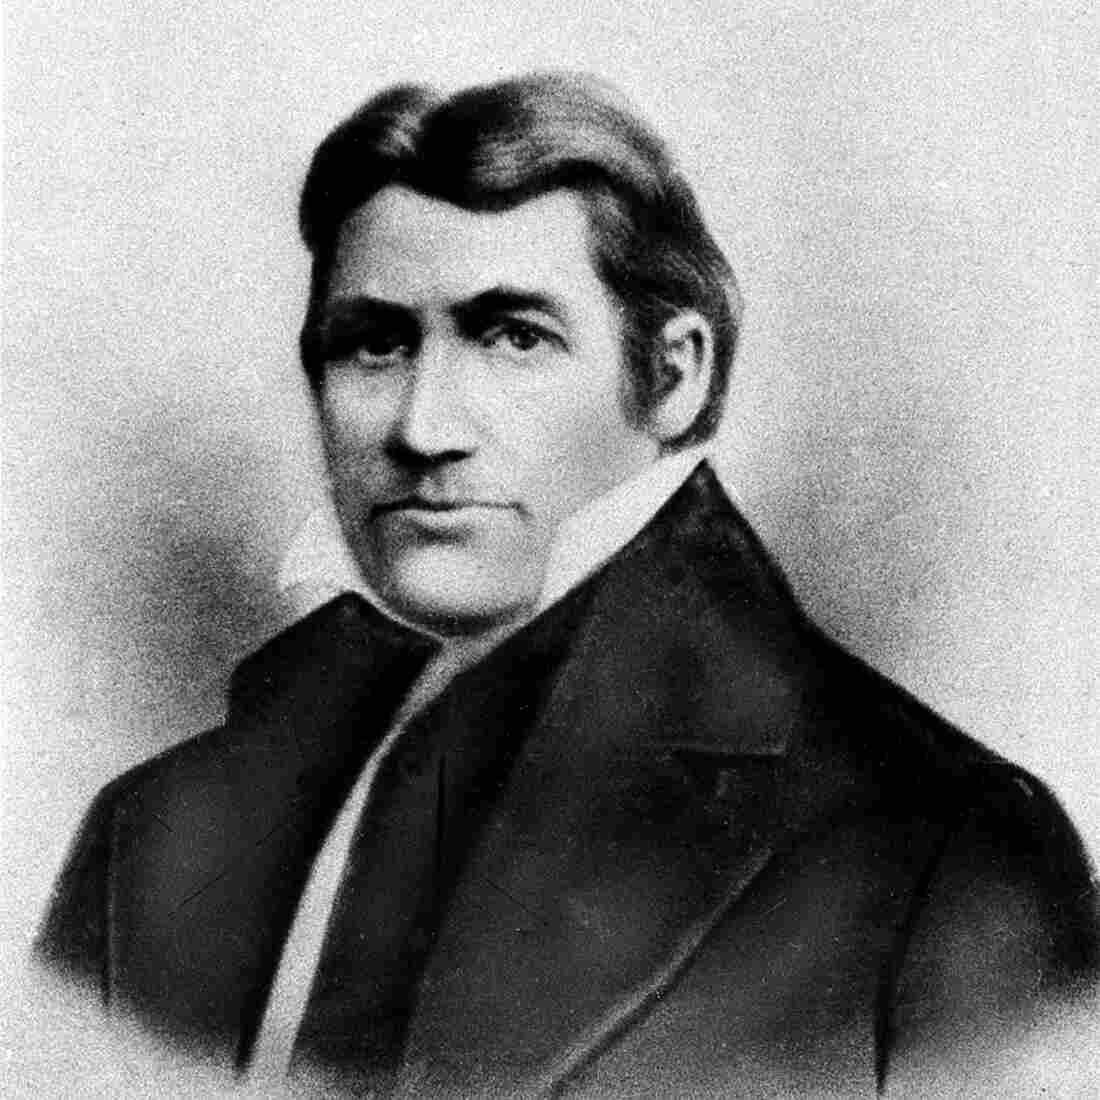 'Born On A Mountaintop' Or Not, Davy Crockett's Legend Lives On